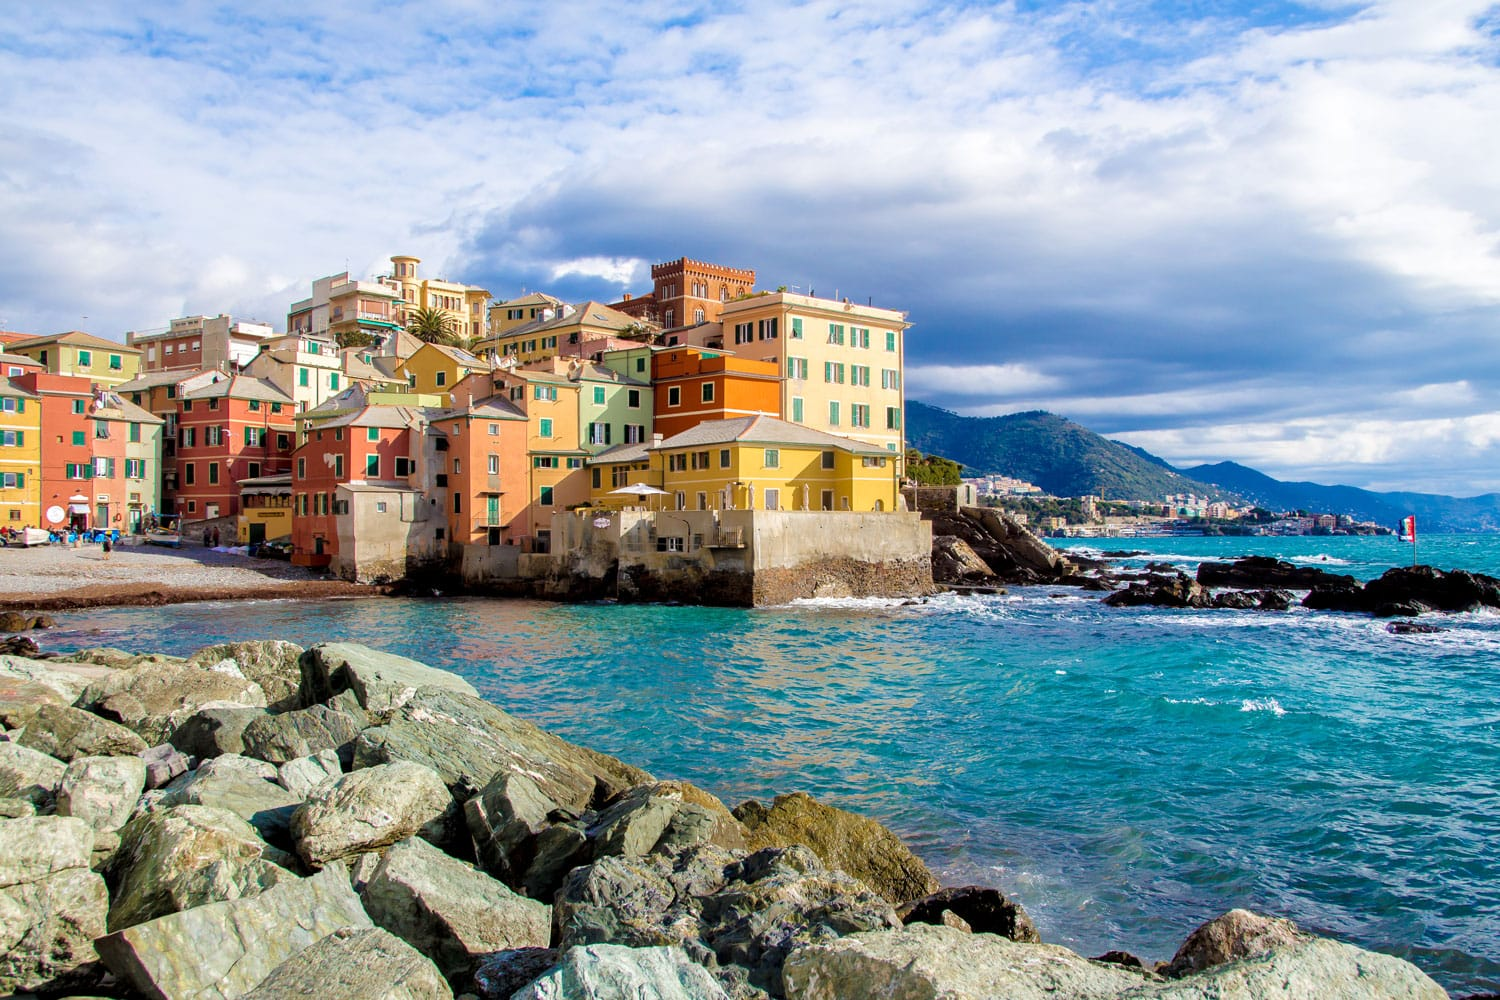 Boccadasse, a district of Genoa in Italy, looks like a small village by the sea